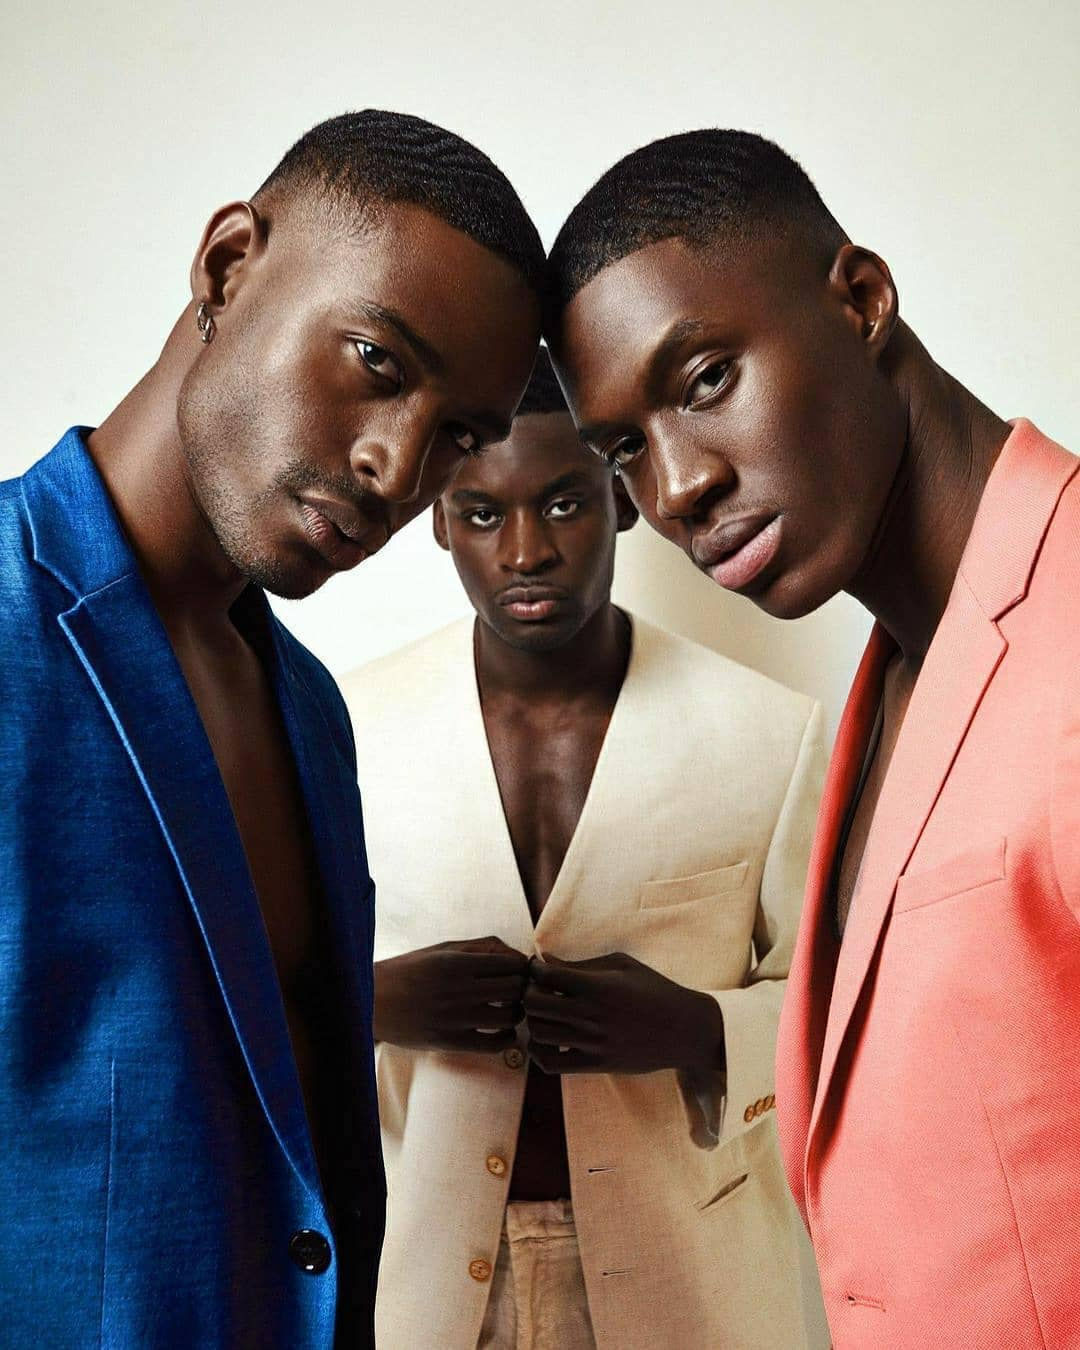 Afro Style Magazine_Black African Men8